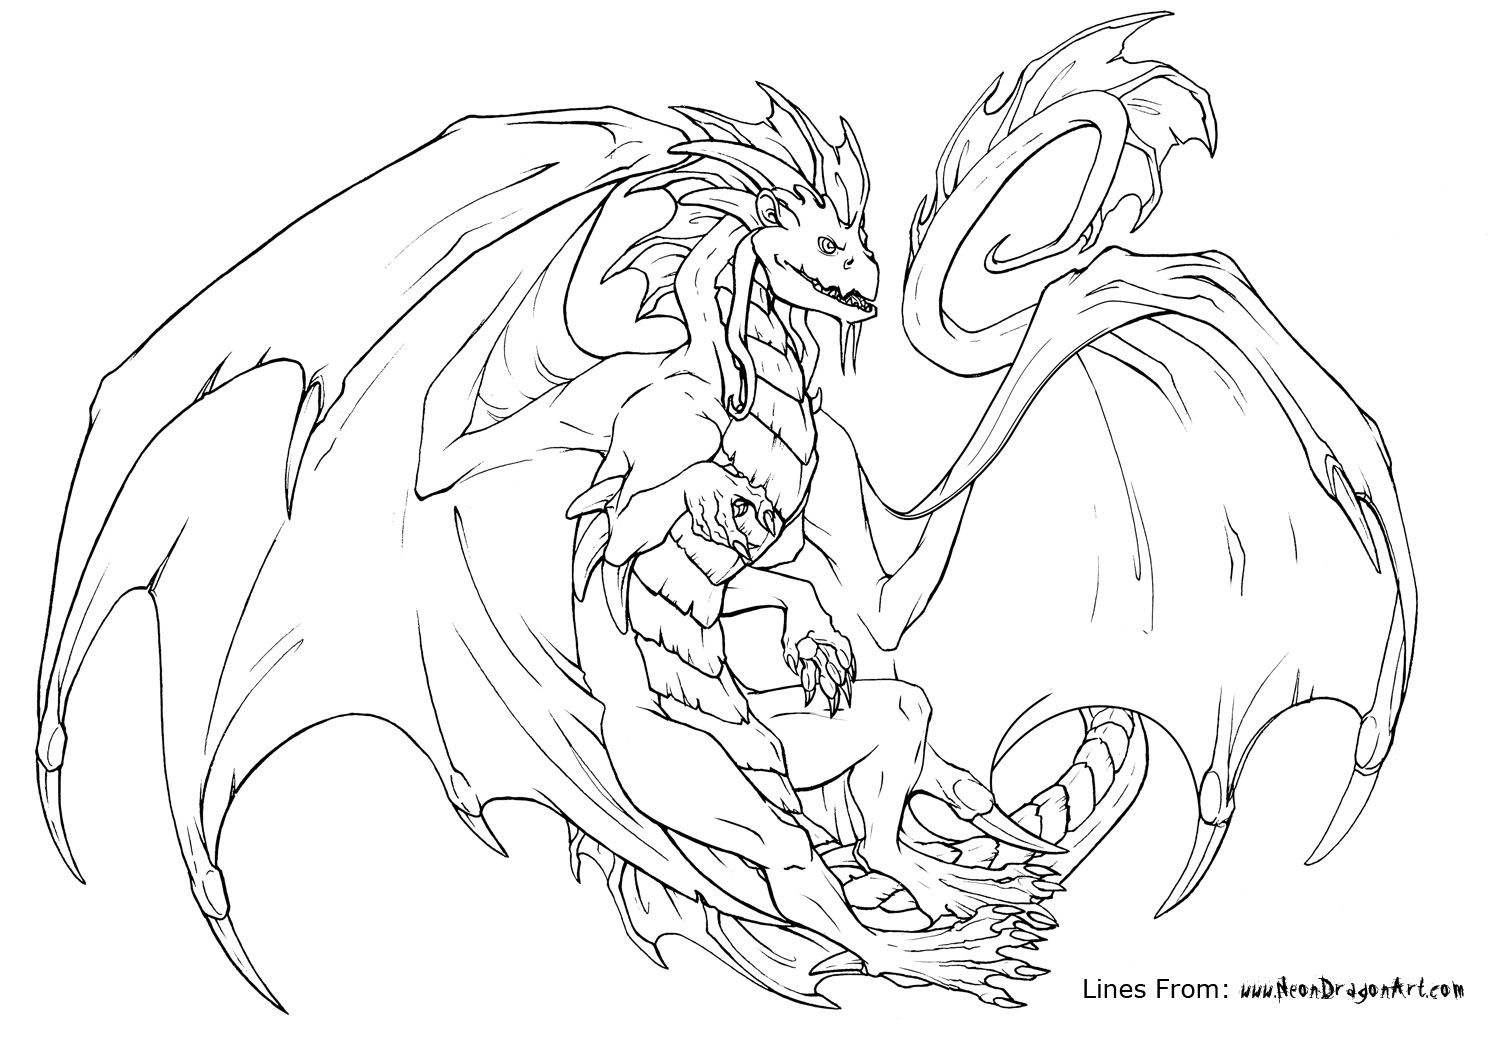 Dragon breathing fire coloring pages, cool dragon coloring pages ...